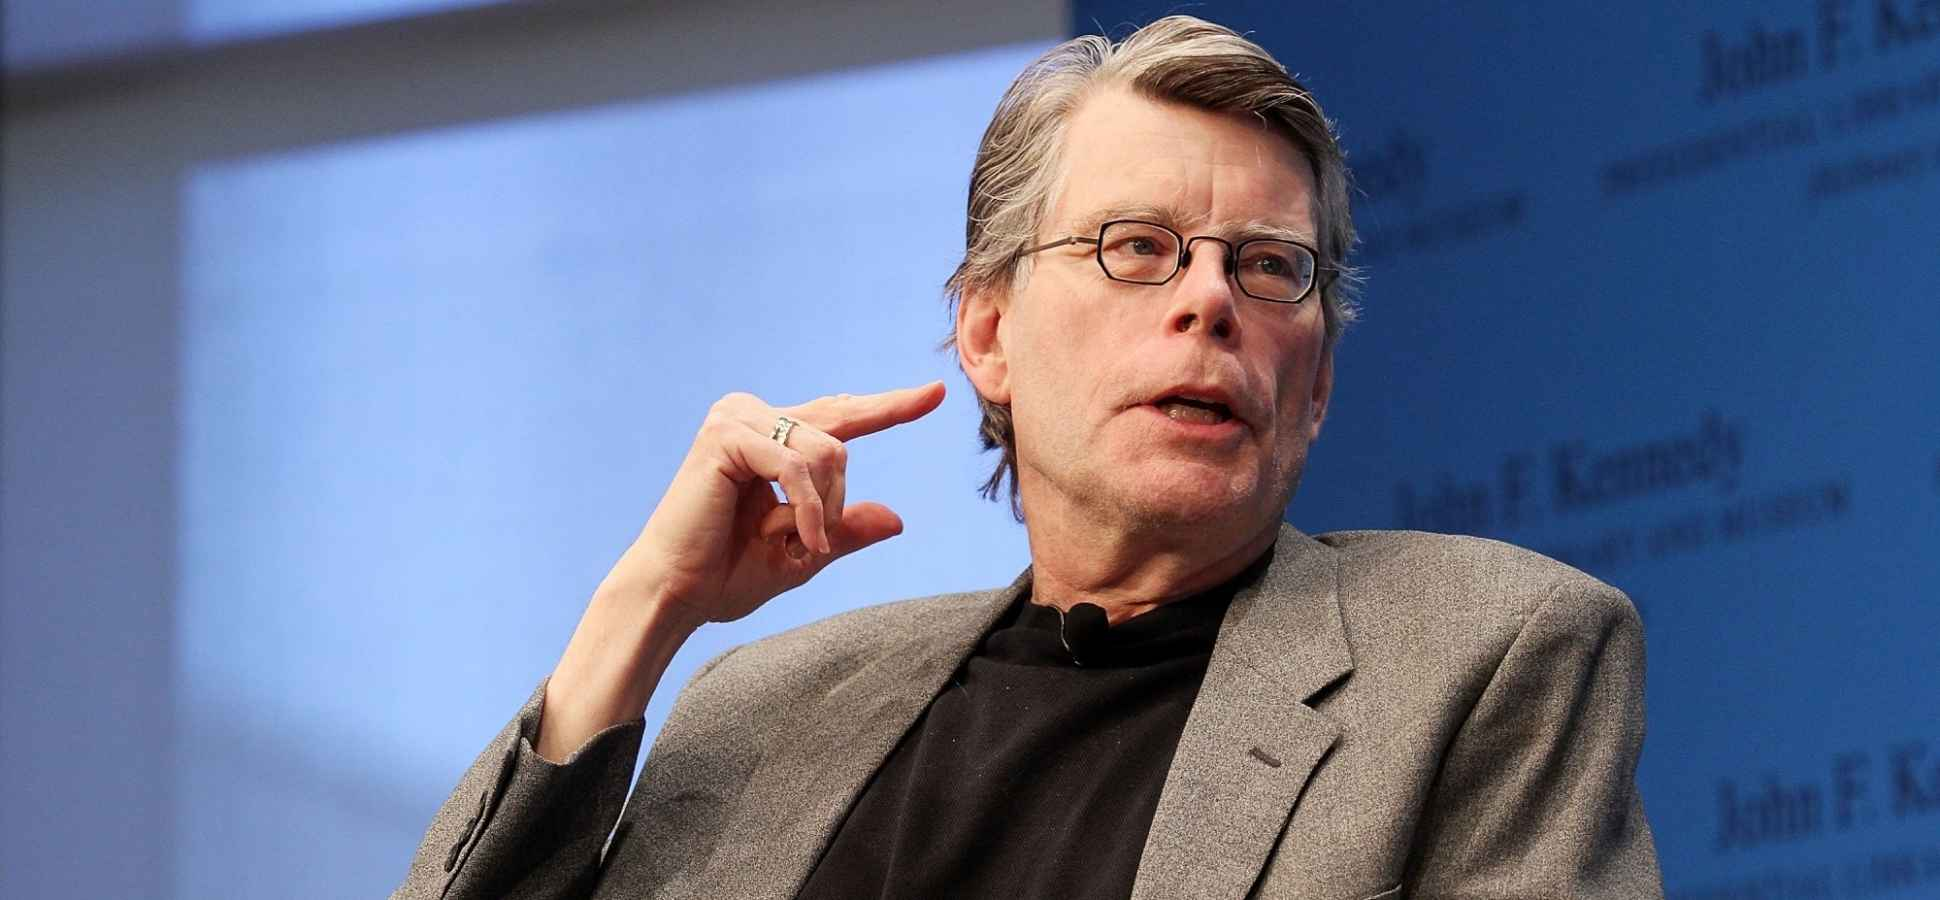 Stephen King Used These 8 Writing Strategies to Sell 350 Million Books